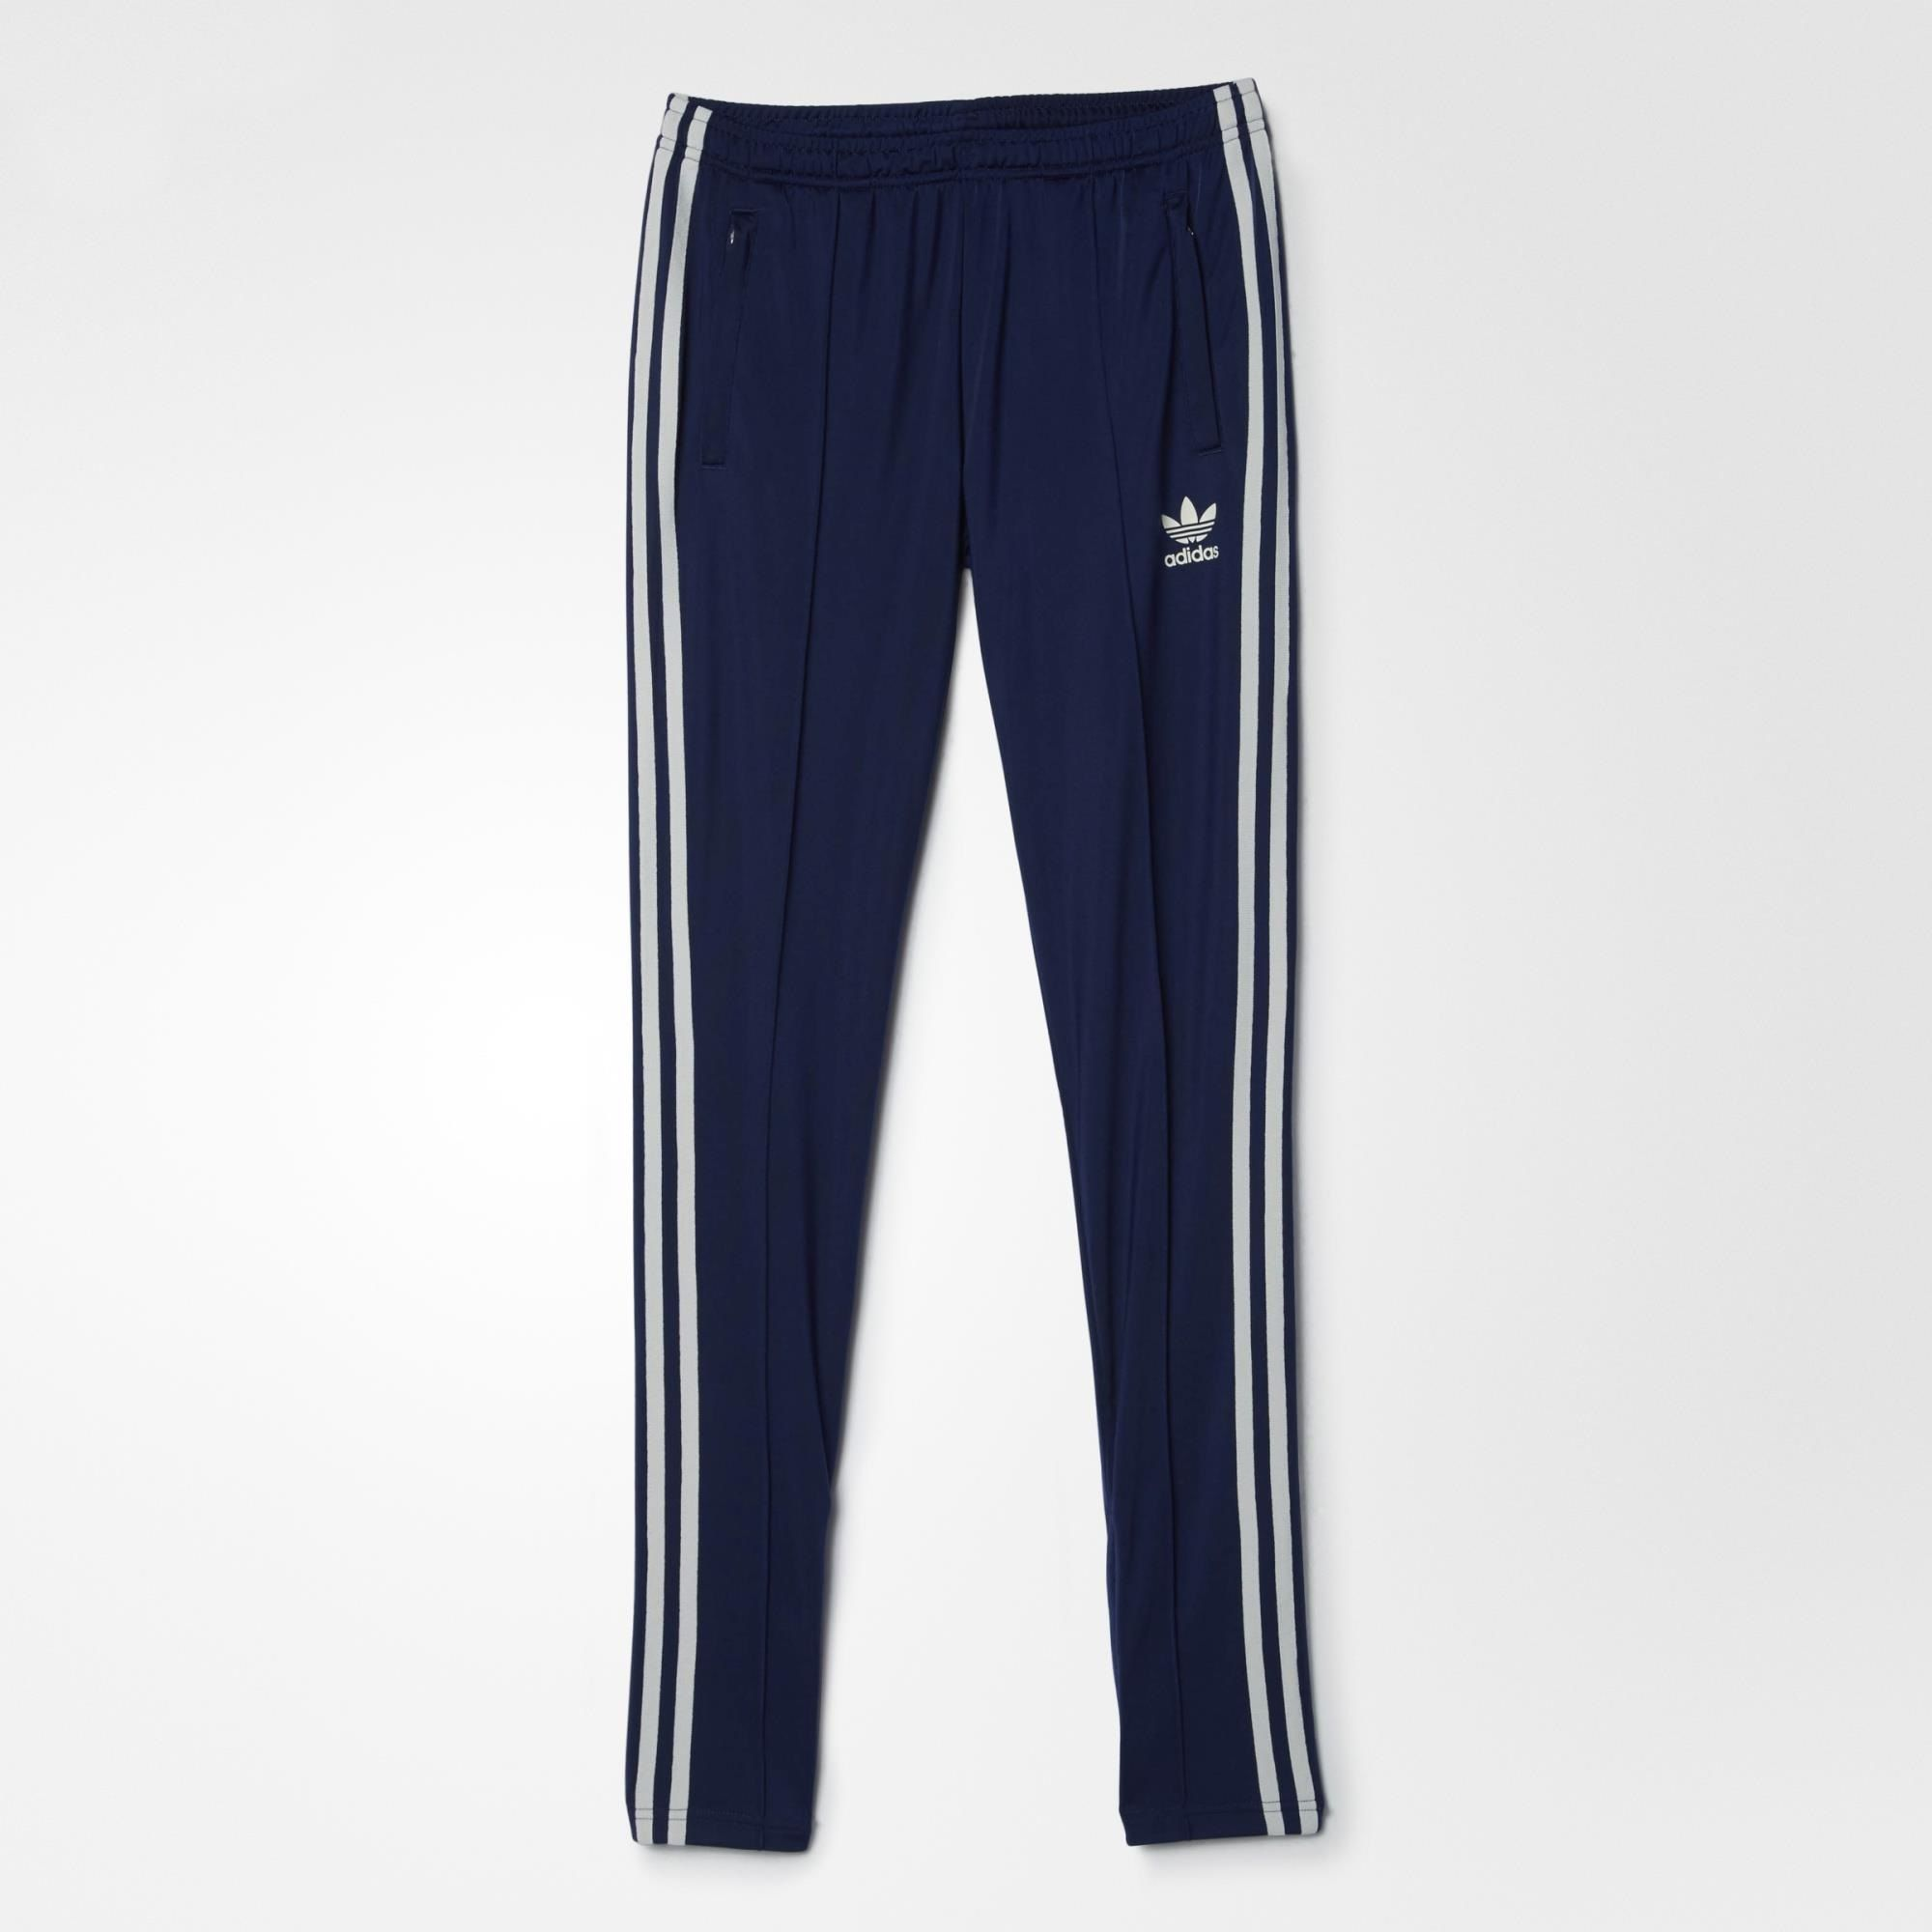 These women's track pants merge a sporty style with a sleek and flattering fit. They feature ankle zips for easy on and off, and a soft brushed fabric inside for a cosy feel.